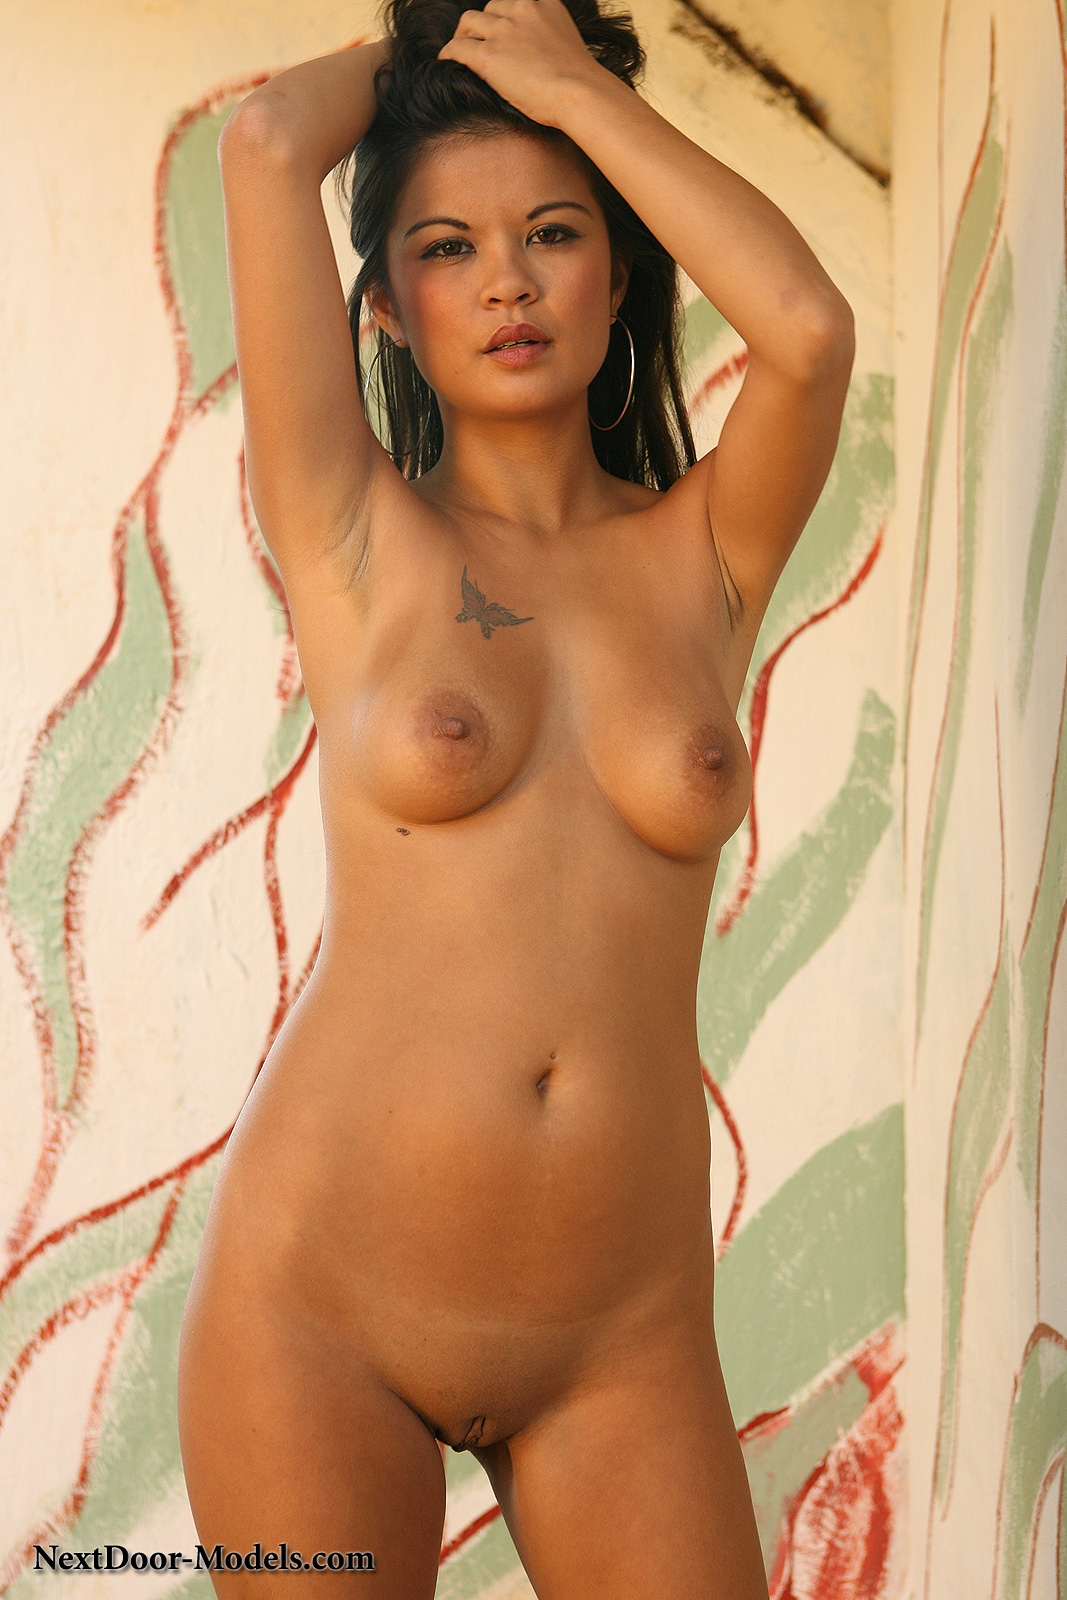 Super model naked lucky